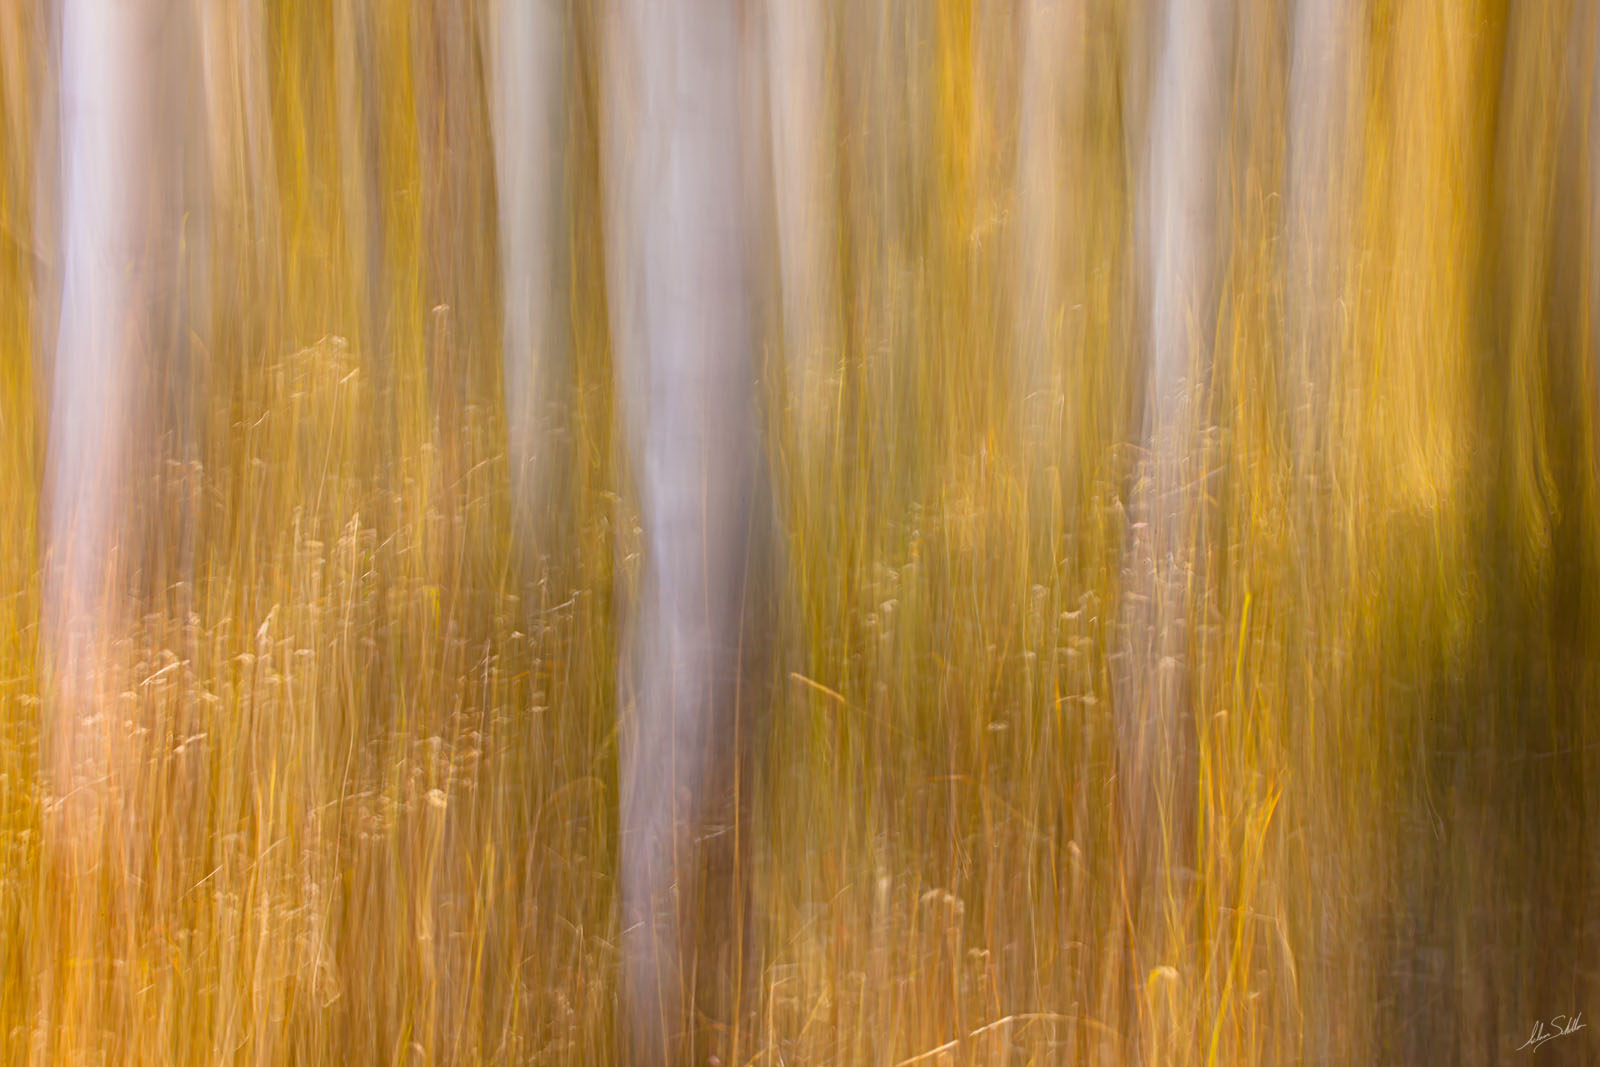 Abstract, Art, Aspen Trees, Aspens, Autumn, Blur, CO, Colorado, Fall, Fall Color, Forest, ICM, Impressionistic, In Camera Motion, Kebler Pass, Tree, grass, grasses, photo